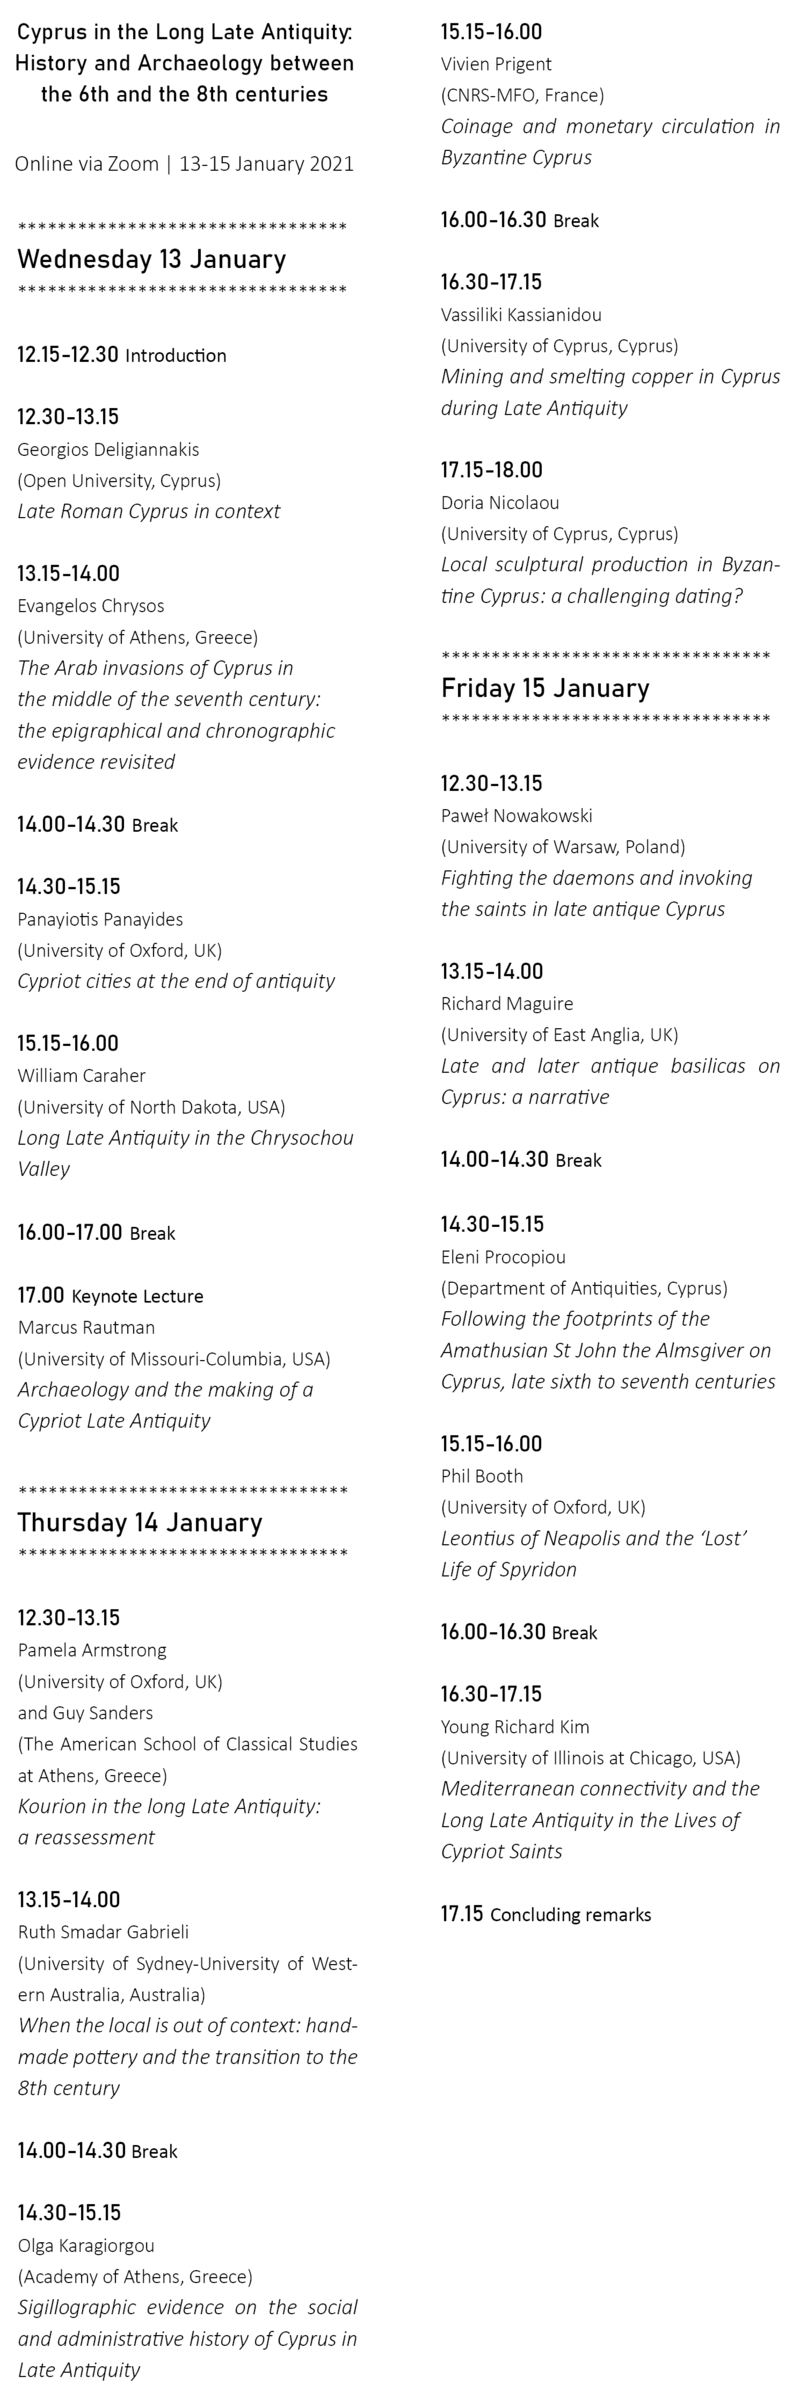 This is a picure of the programme. For an accessible version please send and e-mail to panayiotis.panayides@classics.ox.ac.uk